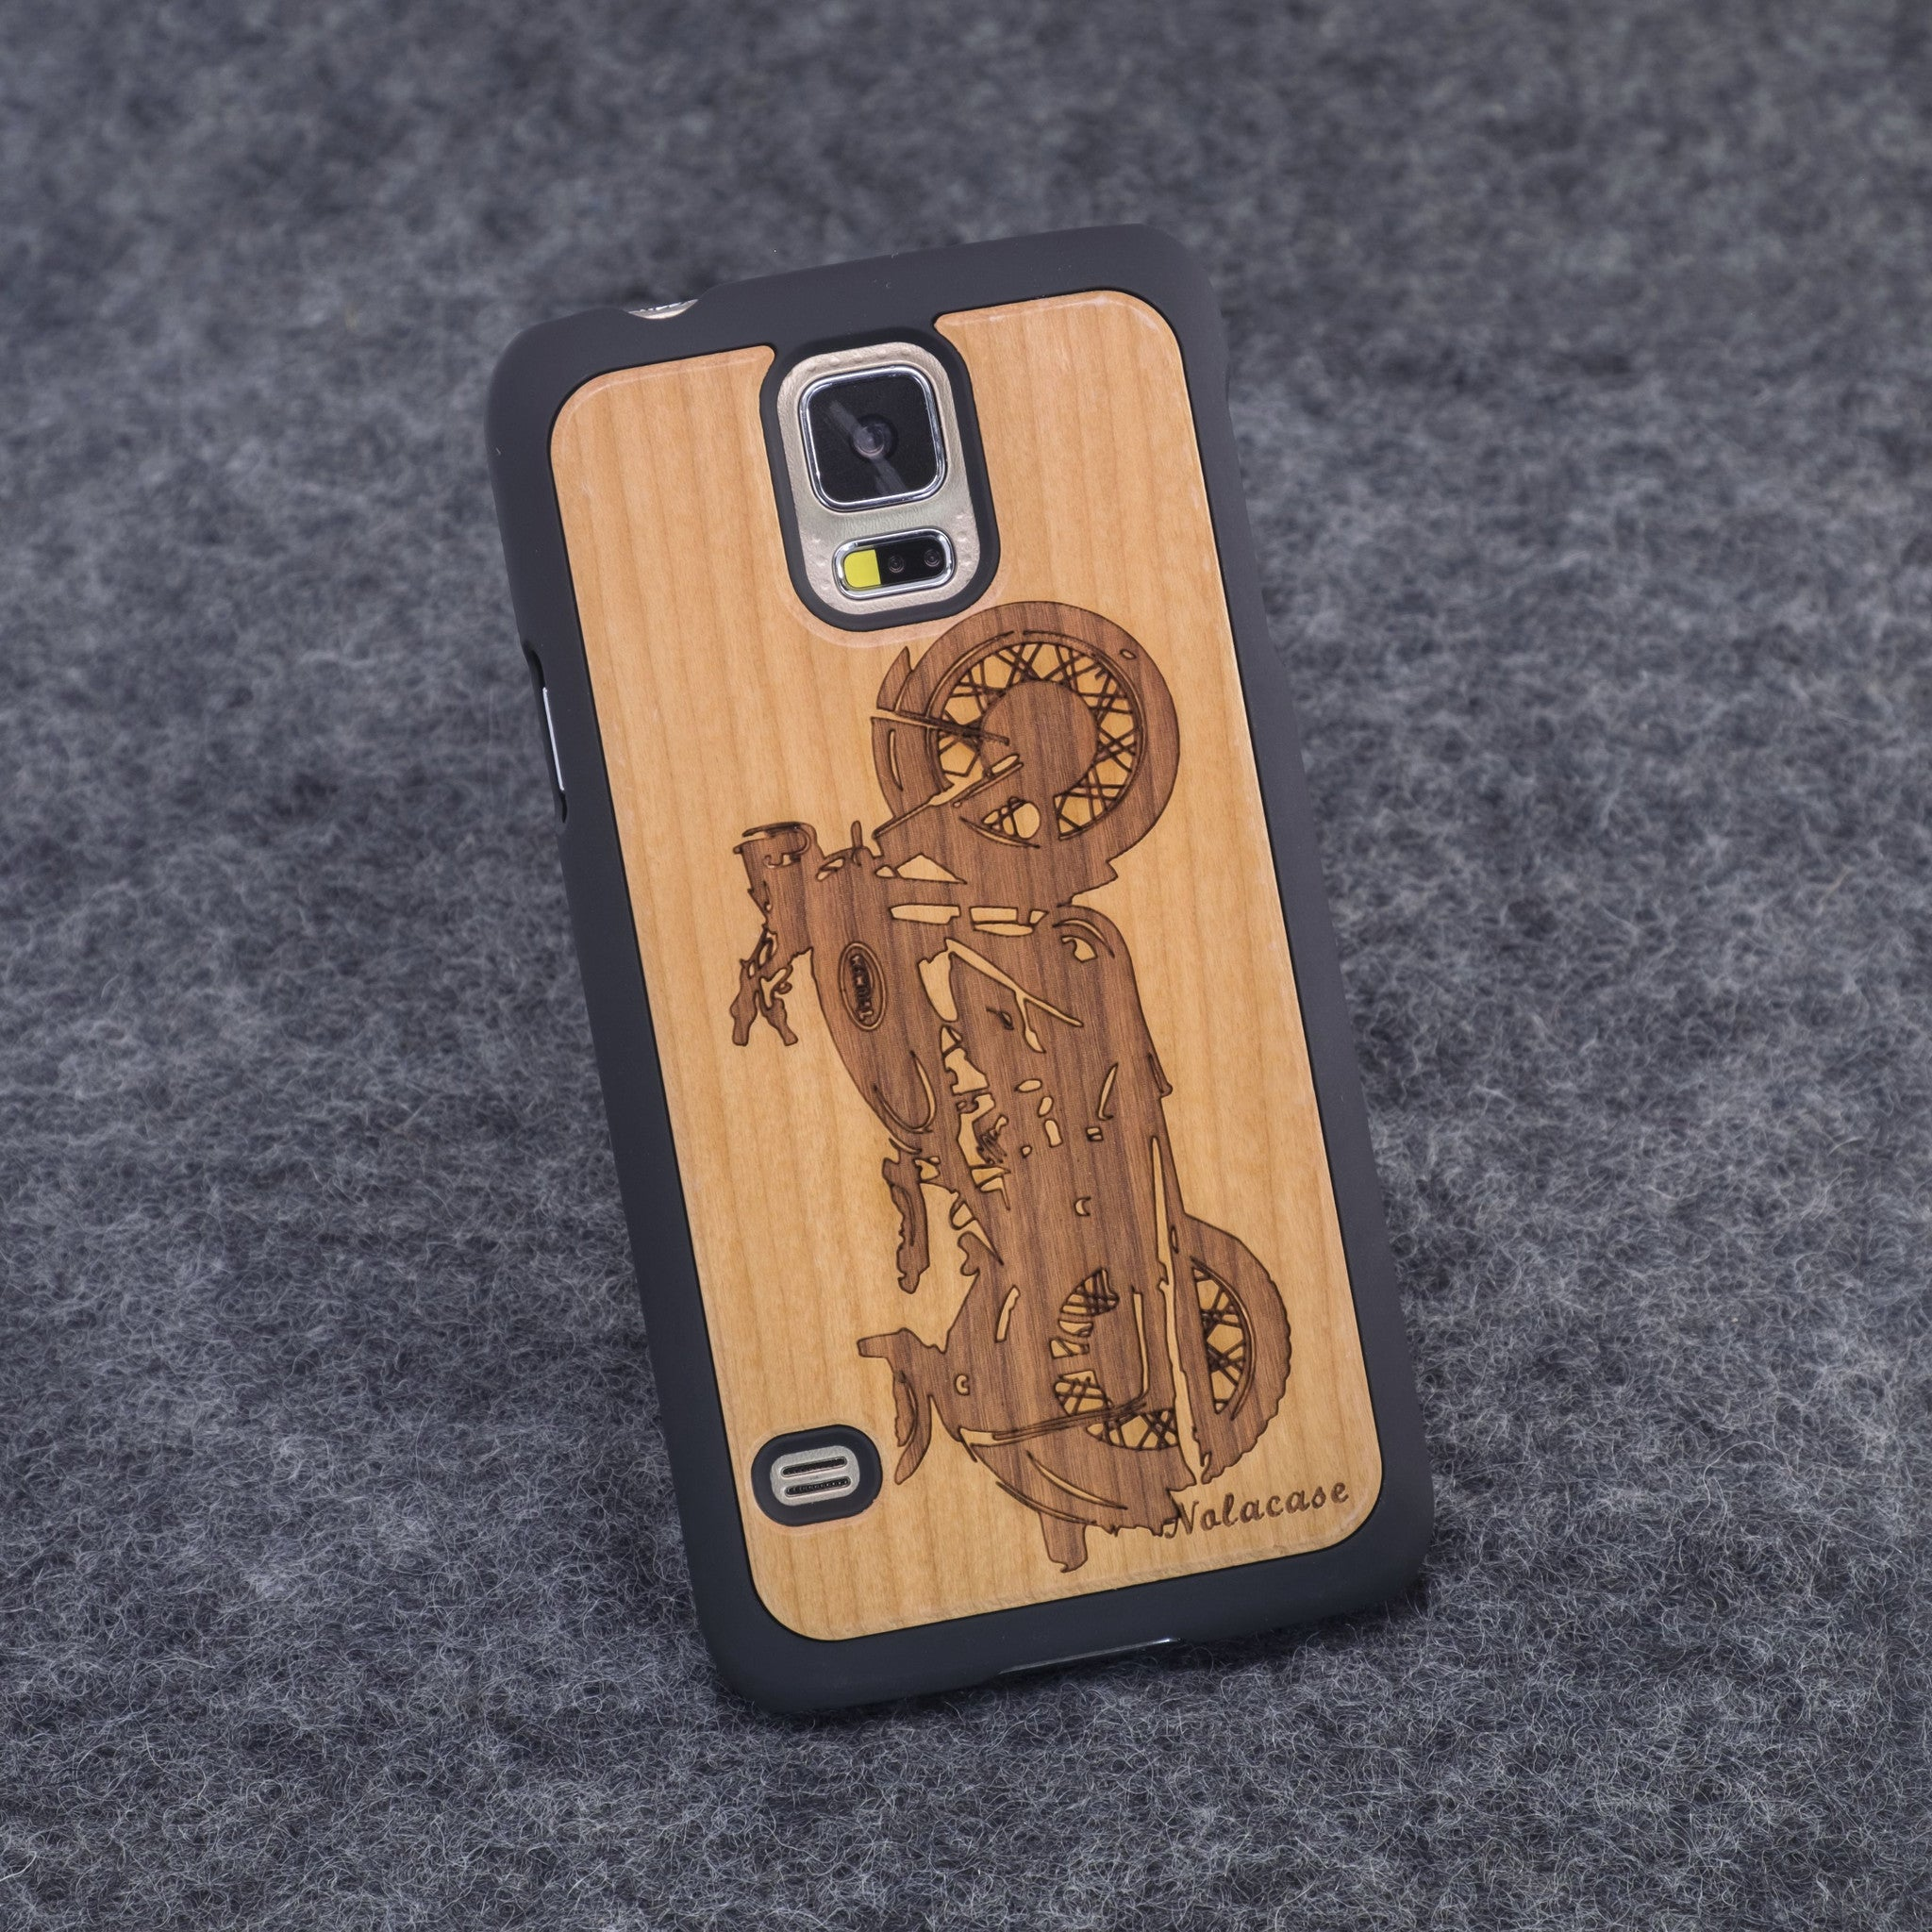 Samsung S5 Motorcycle Slim Wood Case - NOLACASE